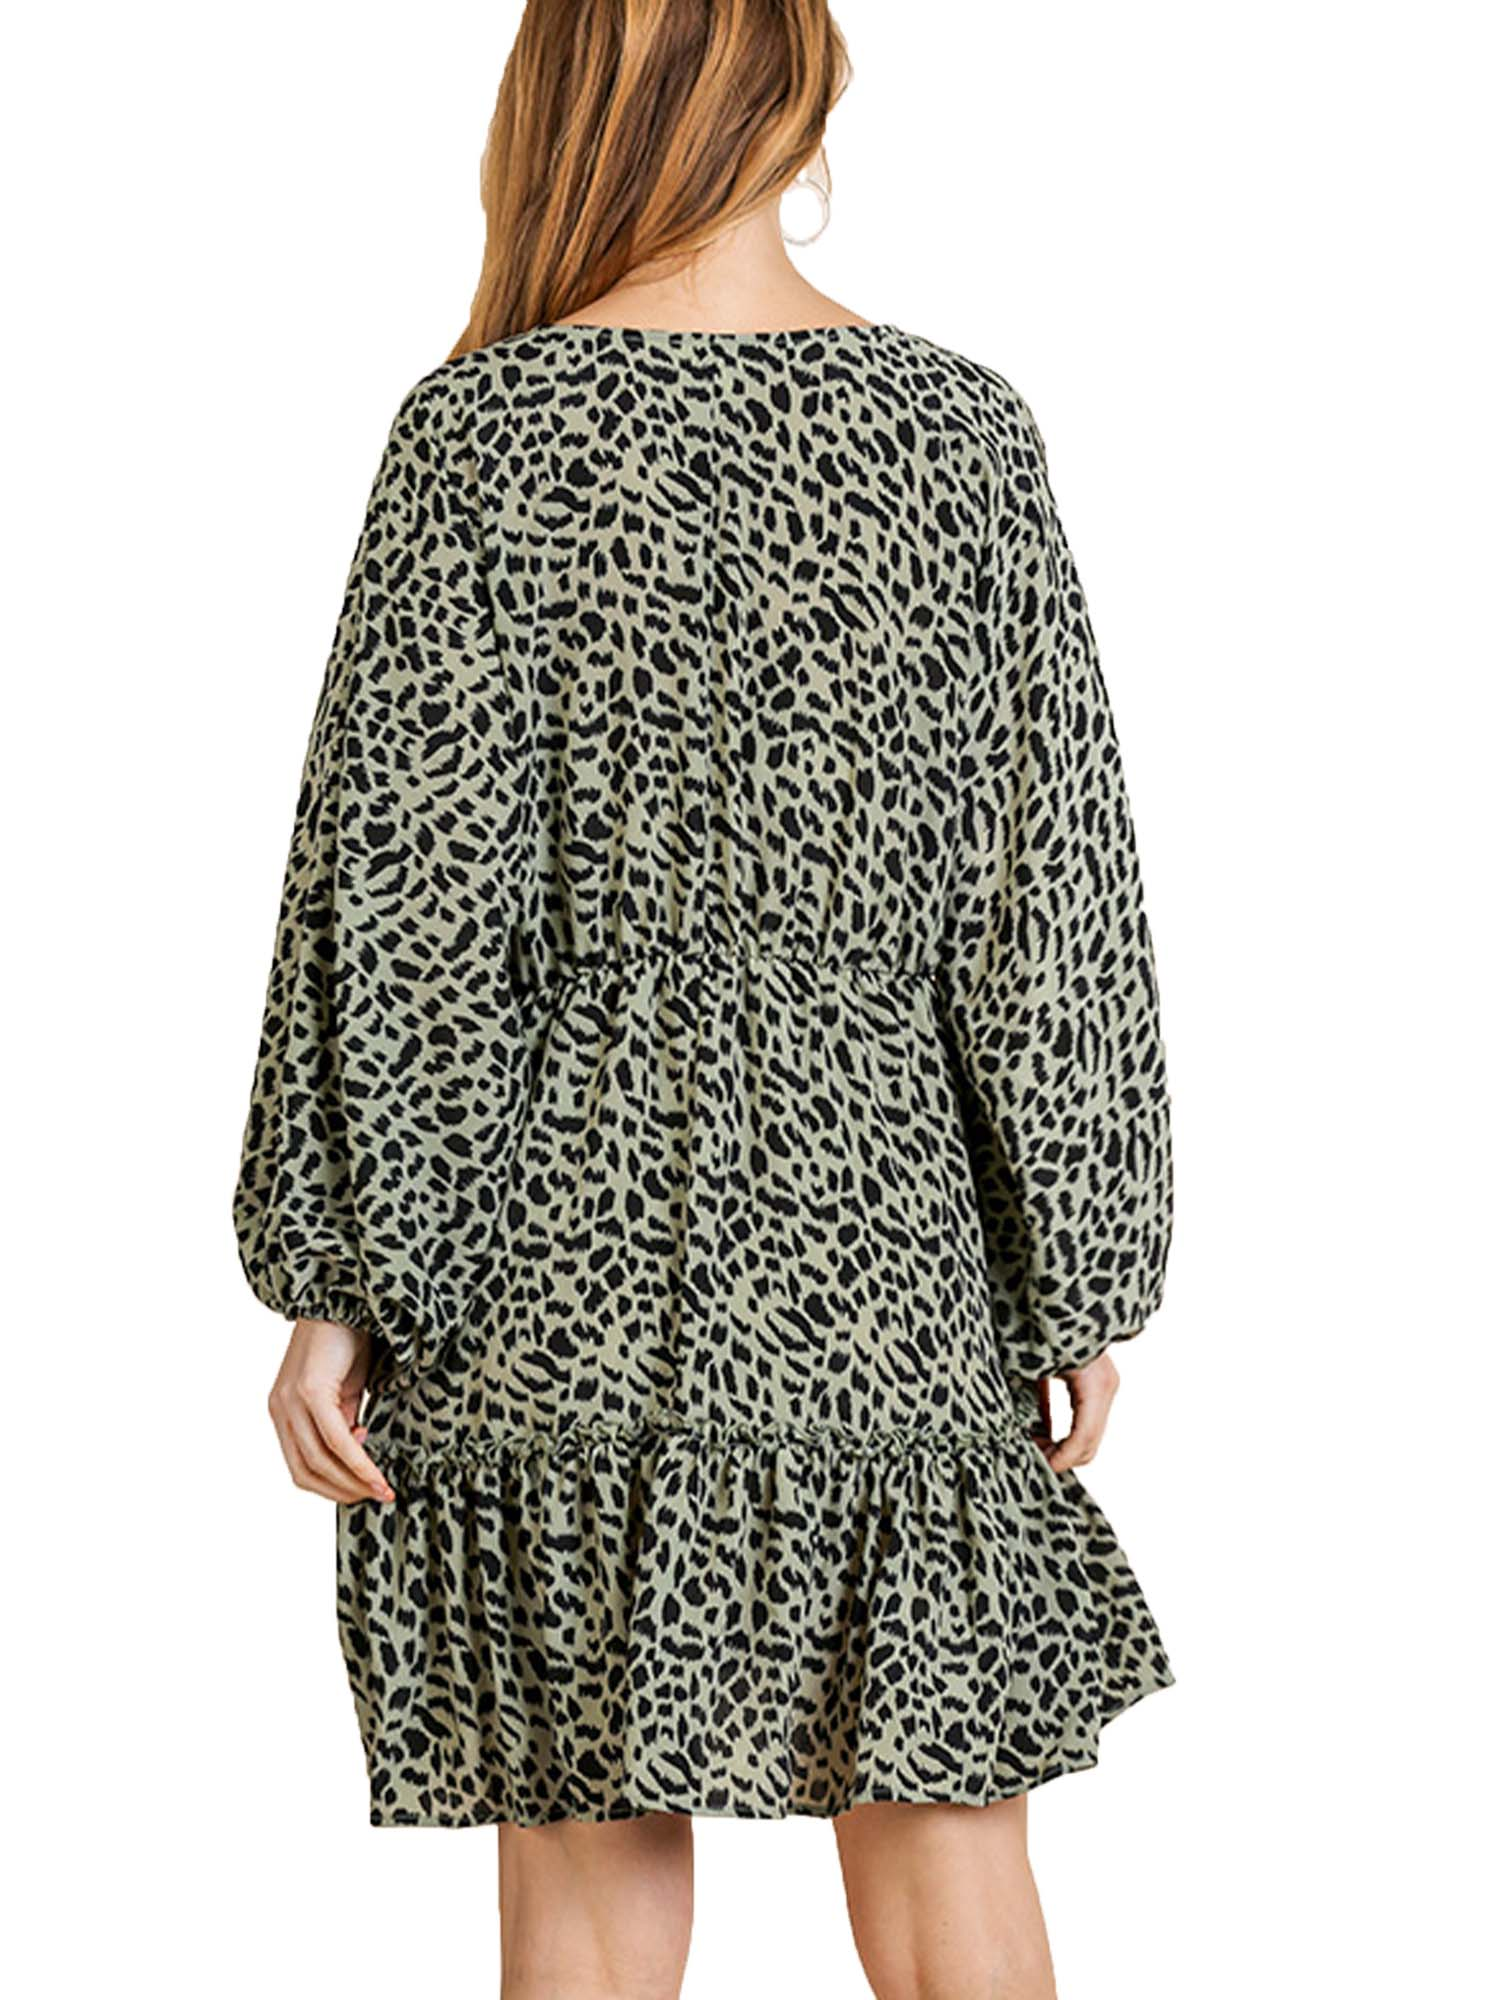 Sage Animal Print V-Neck Dress with Ruffle Trim and Neck Tie